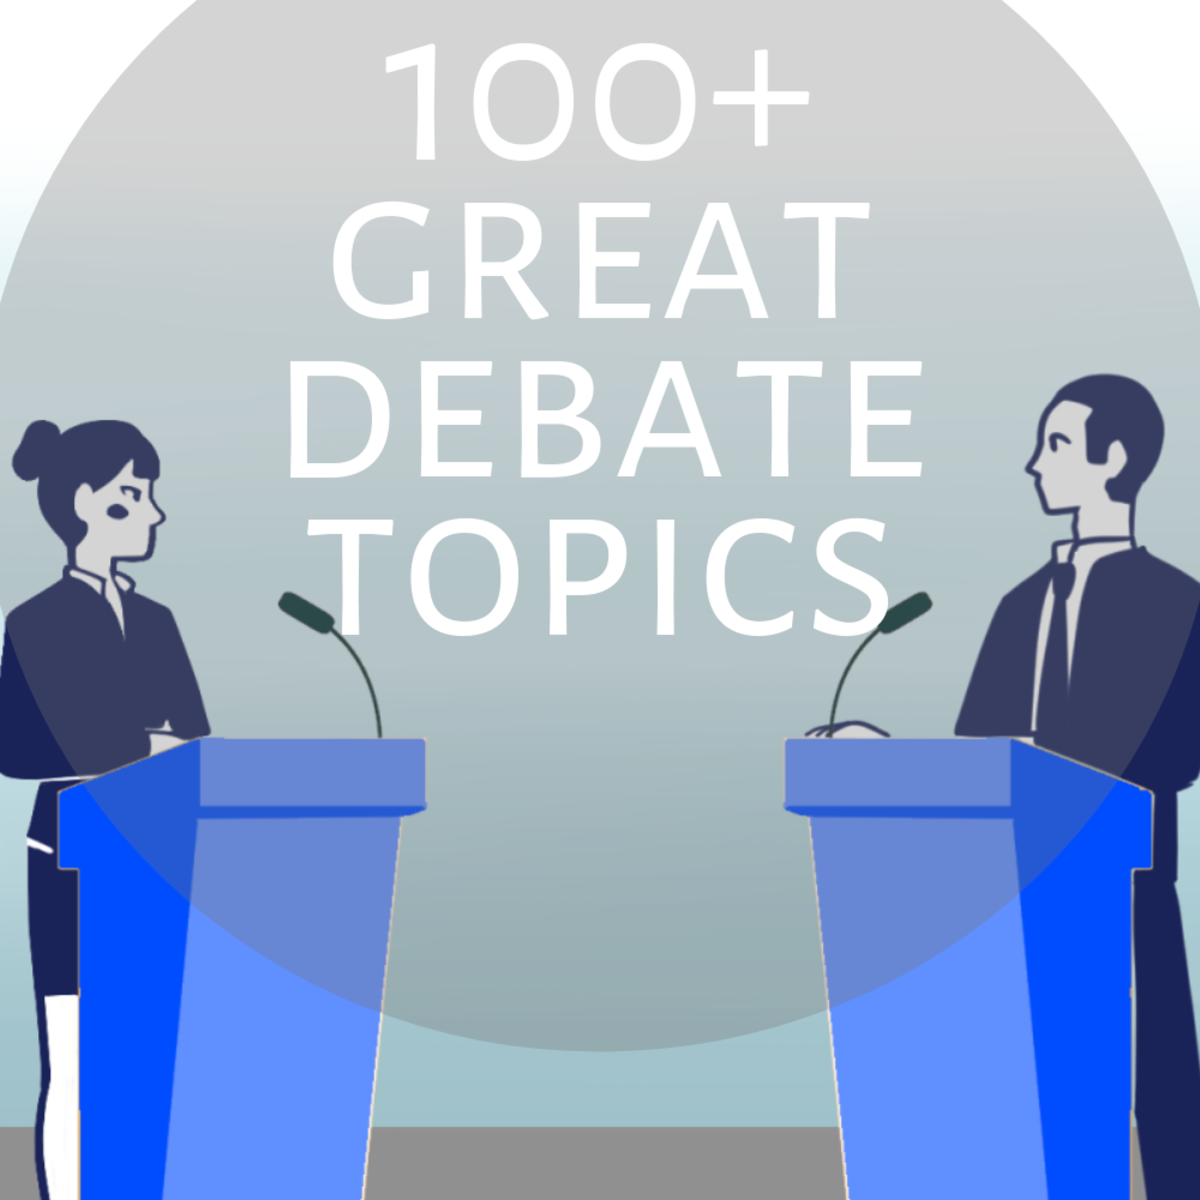 Excellent, compelling, and controversial subjects to debate for middle, high school and college students